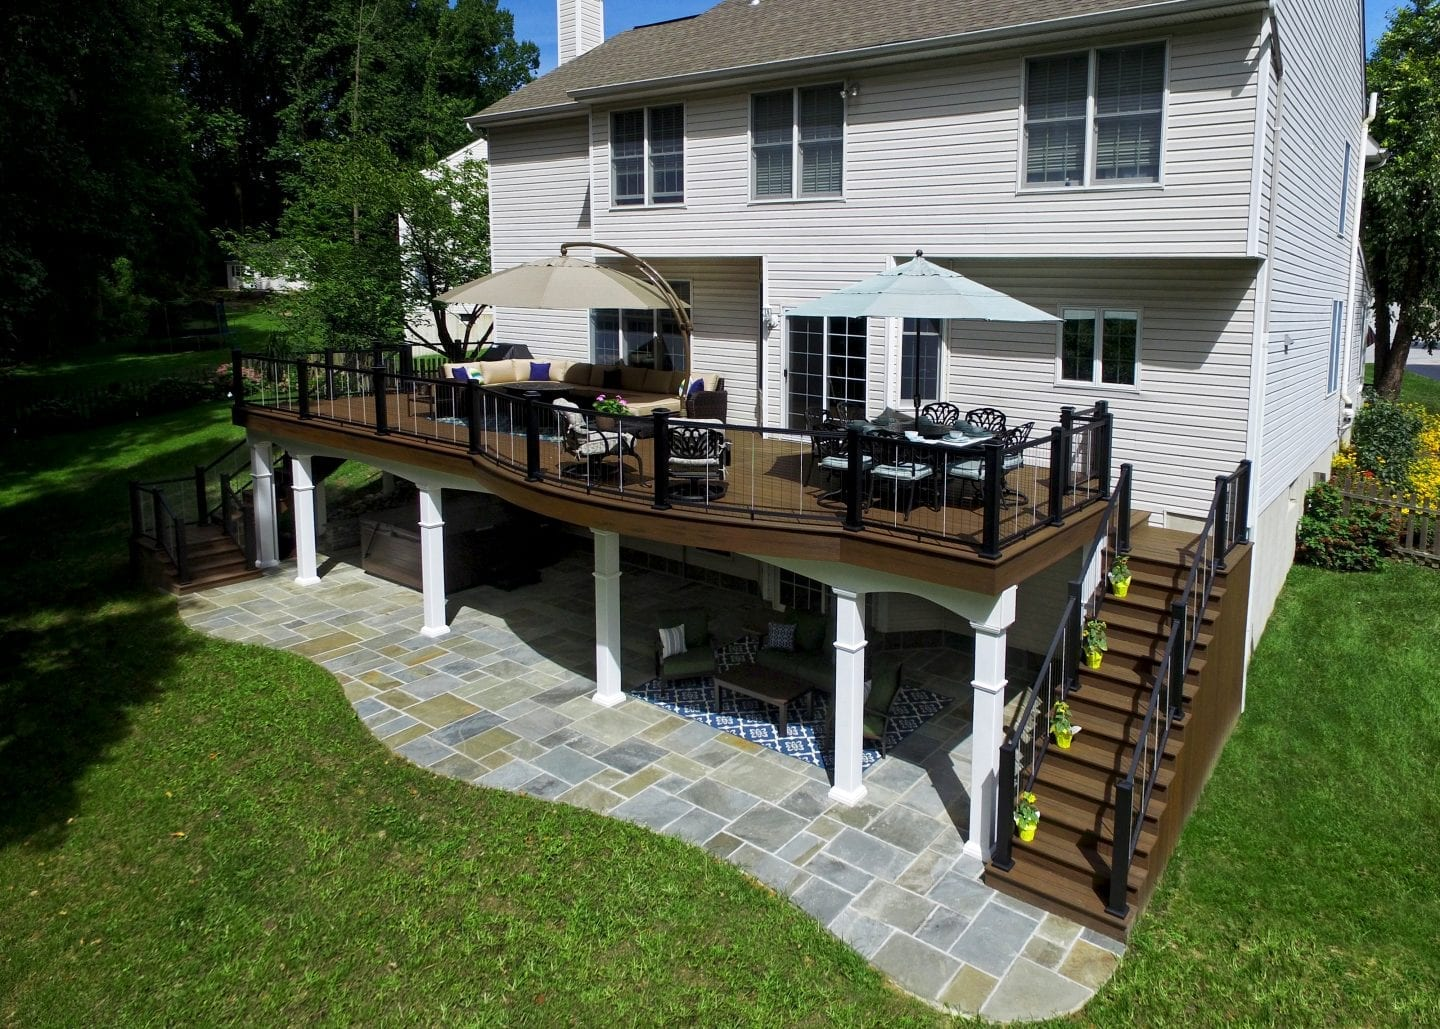 Backyard patio builders covered patios chester - Deck ideas for home ...